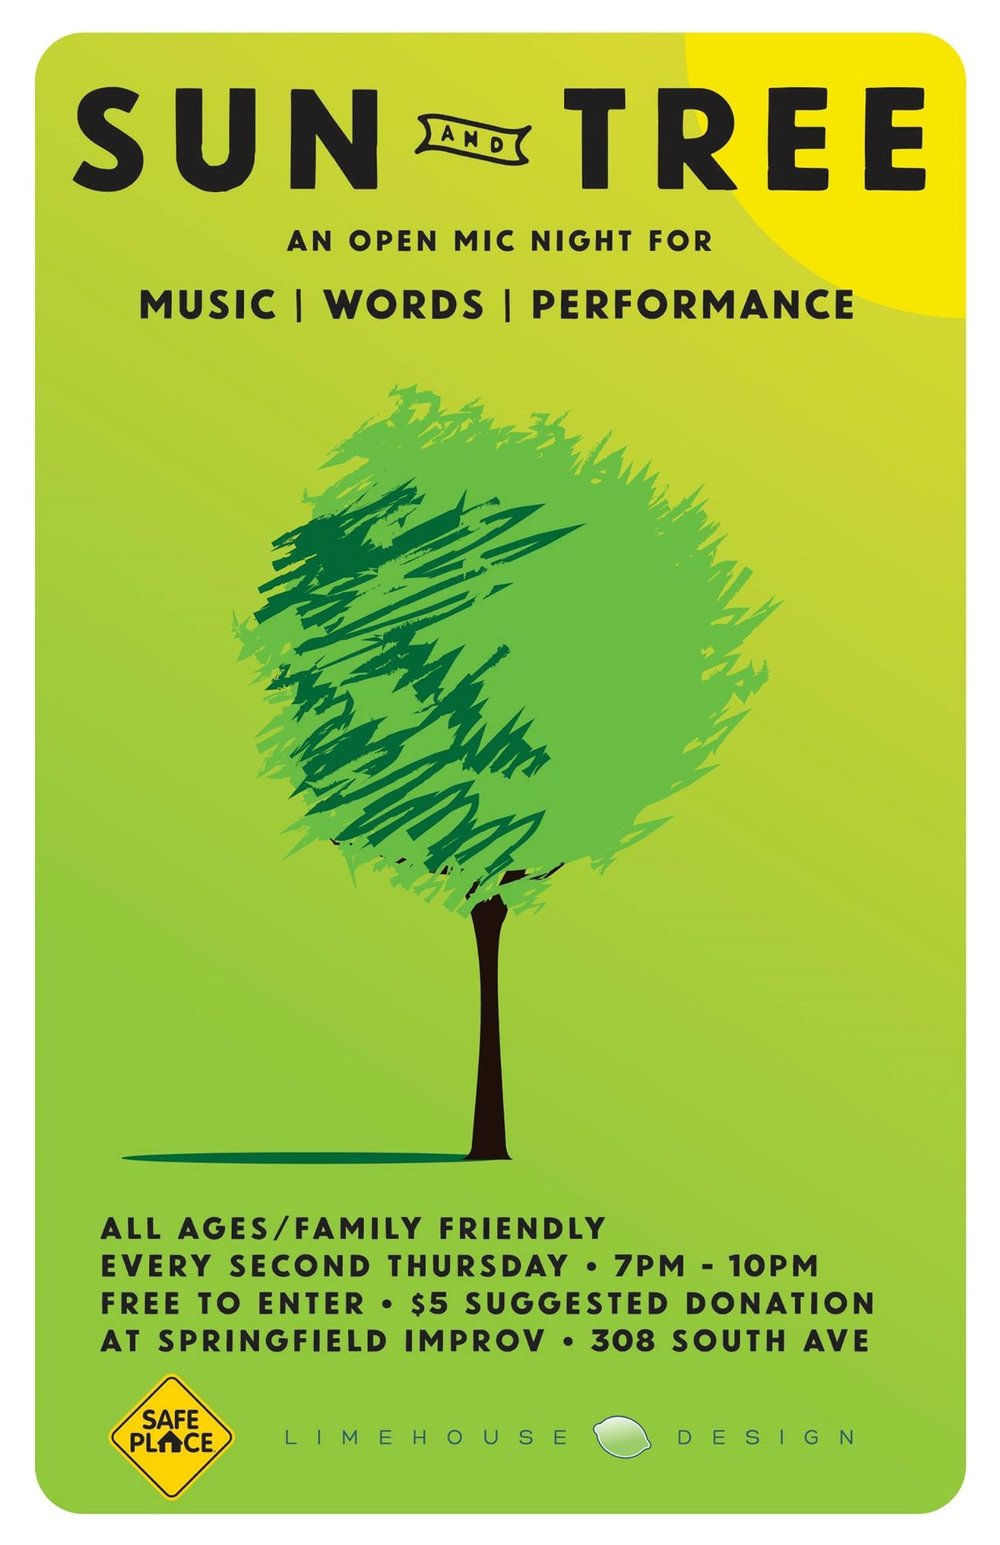 Sun and Tree - Do you or someone you know need a creative space to perform in? Every second Thursday ORO hosts an all ages, family friendly Open Mic. This is a great place to get your first performance in. See yourself and others shine and grow. Prizes are awarded to top performers and to random audience members.Next Event - Thursday, July 13, 7:30 PM @ Springfield Improv (308 South Avenue)Free to Enter, $5 Suggested Donation.